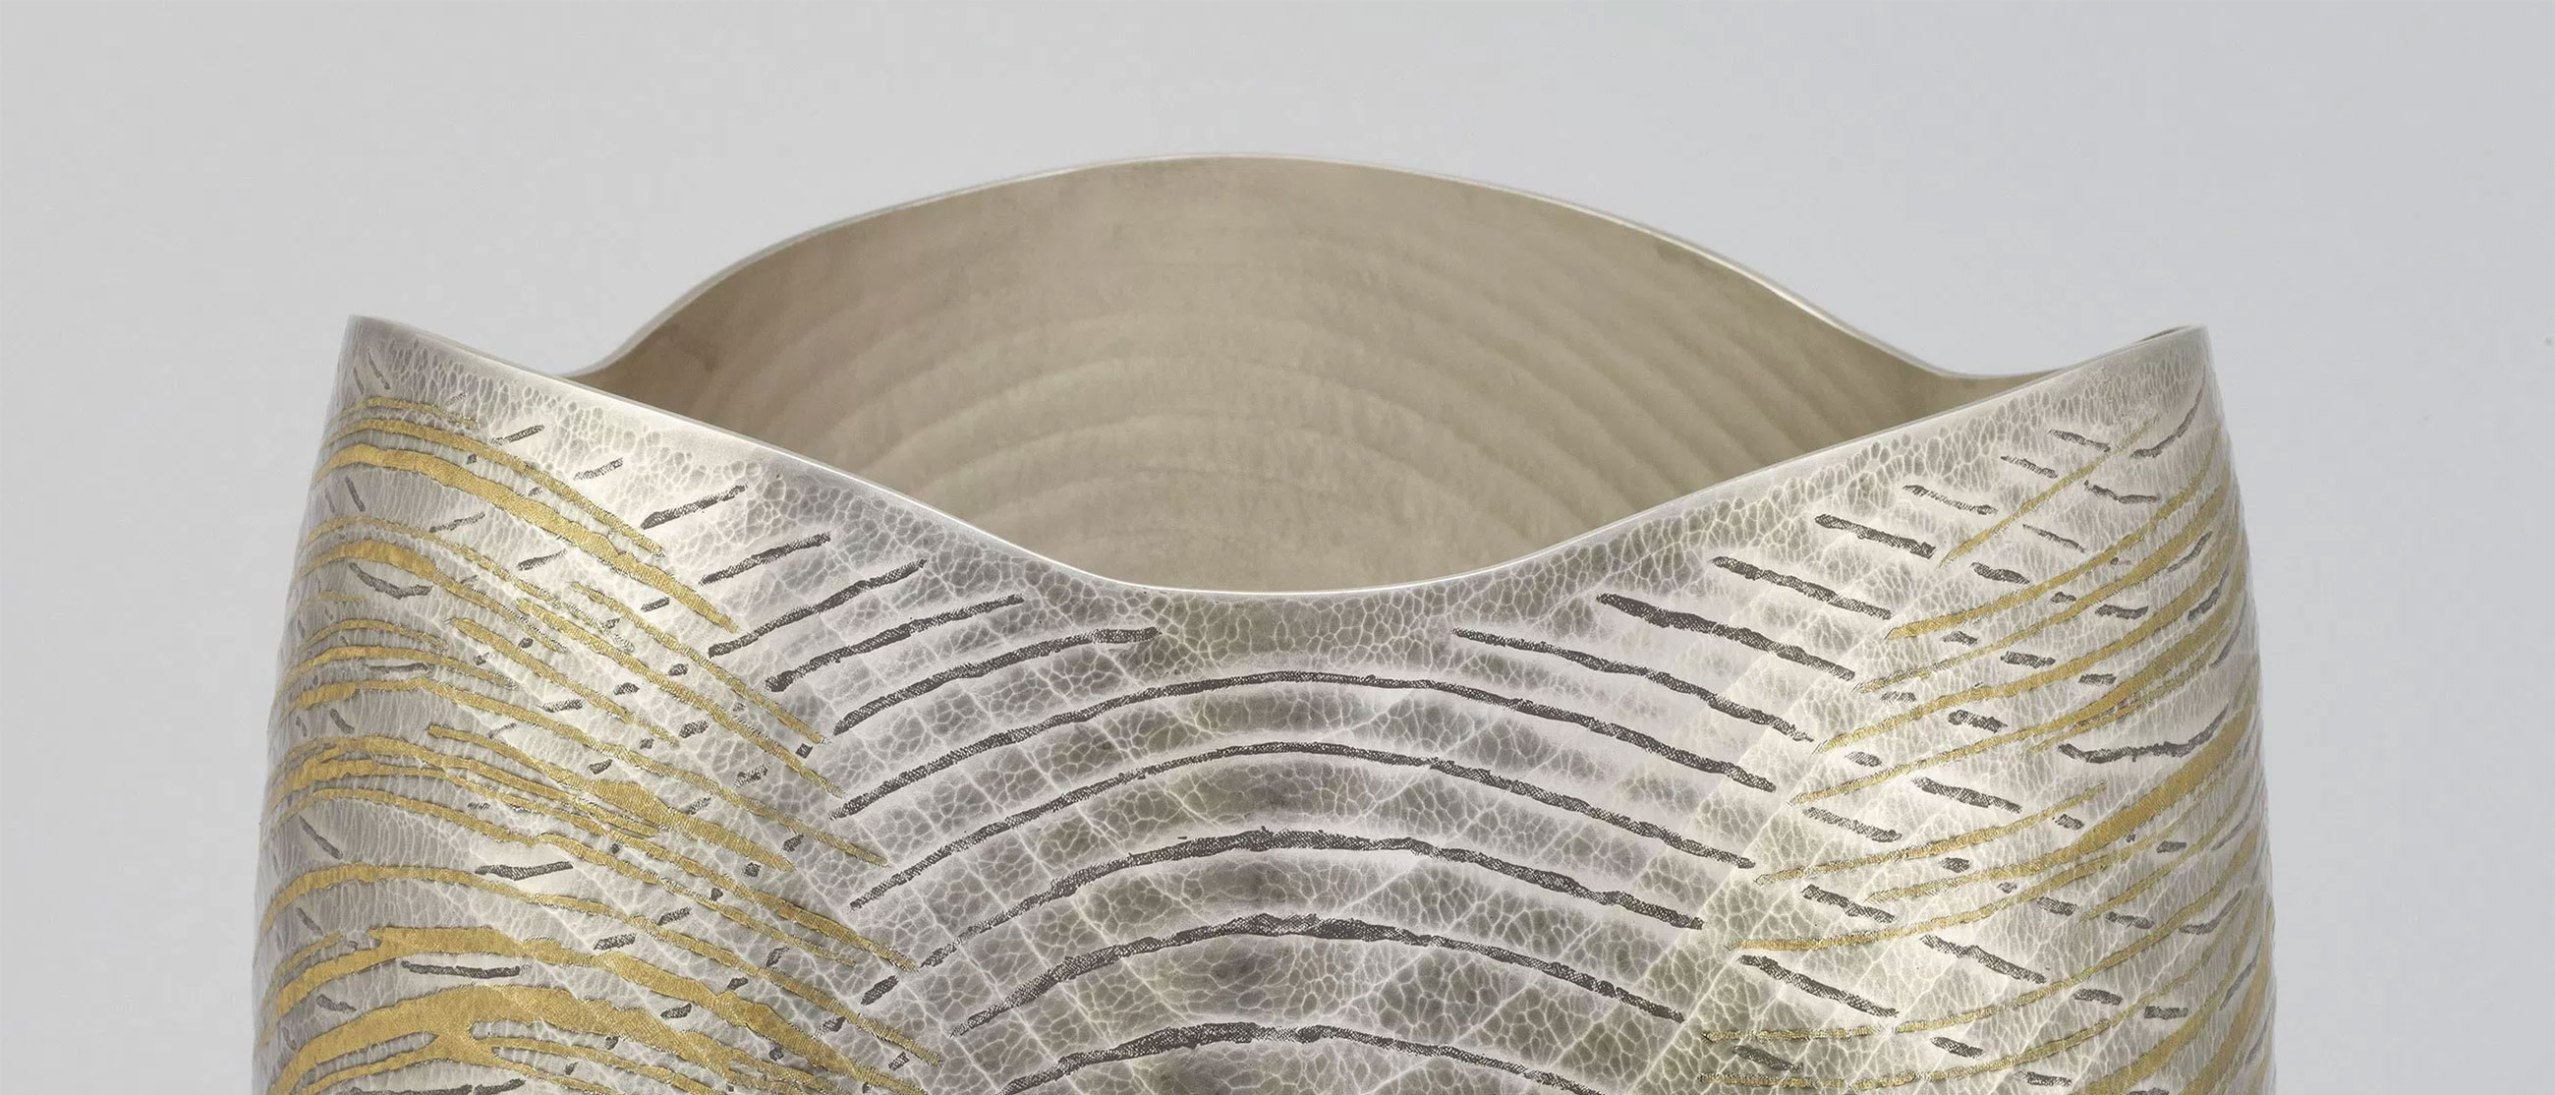 detail from Osumi Yukie's Sound of Waves, showing dark and gold wavey marks on a silver vessel with an undulating lip and wave pattern interior